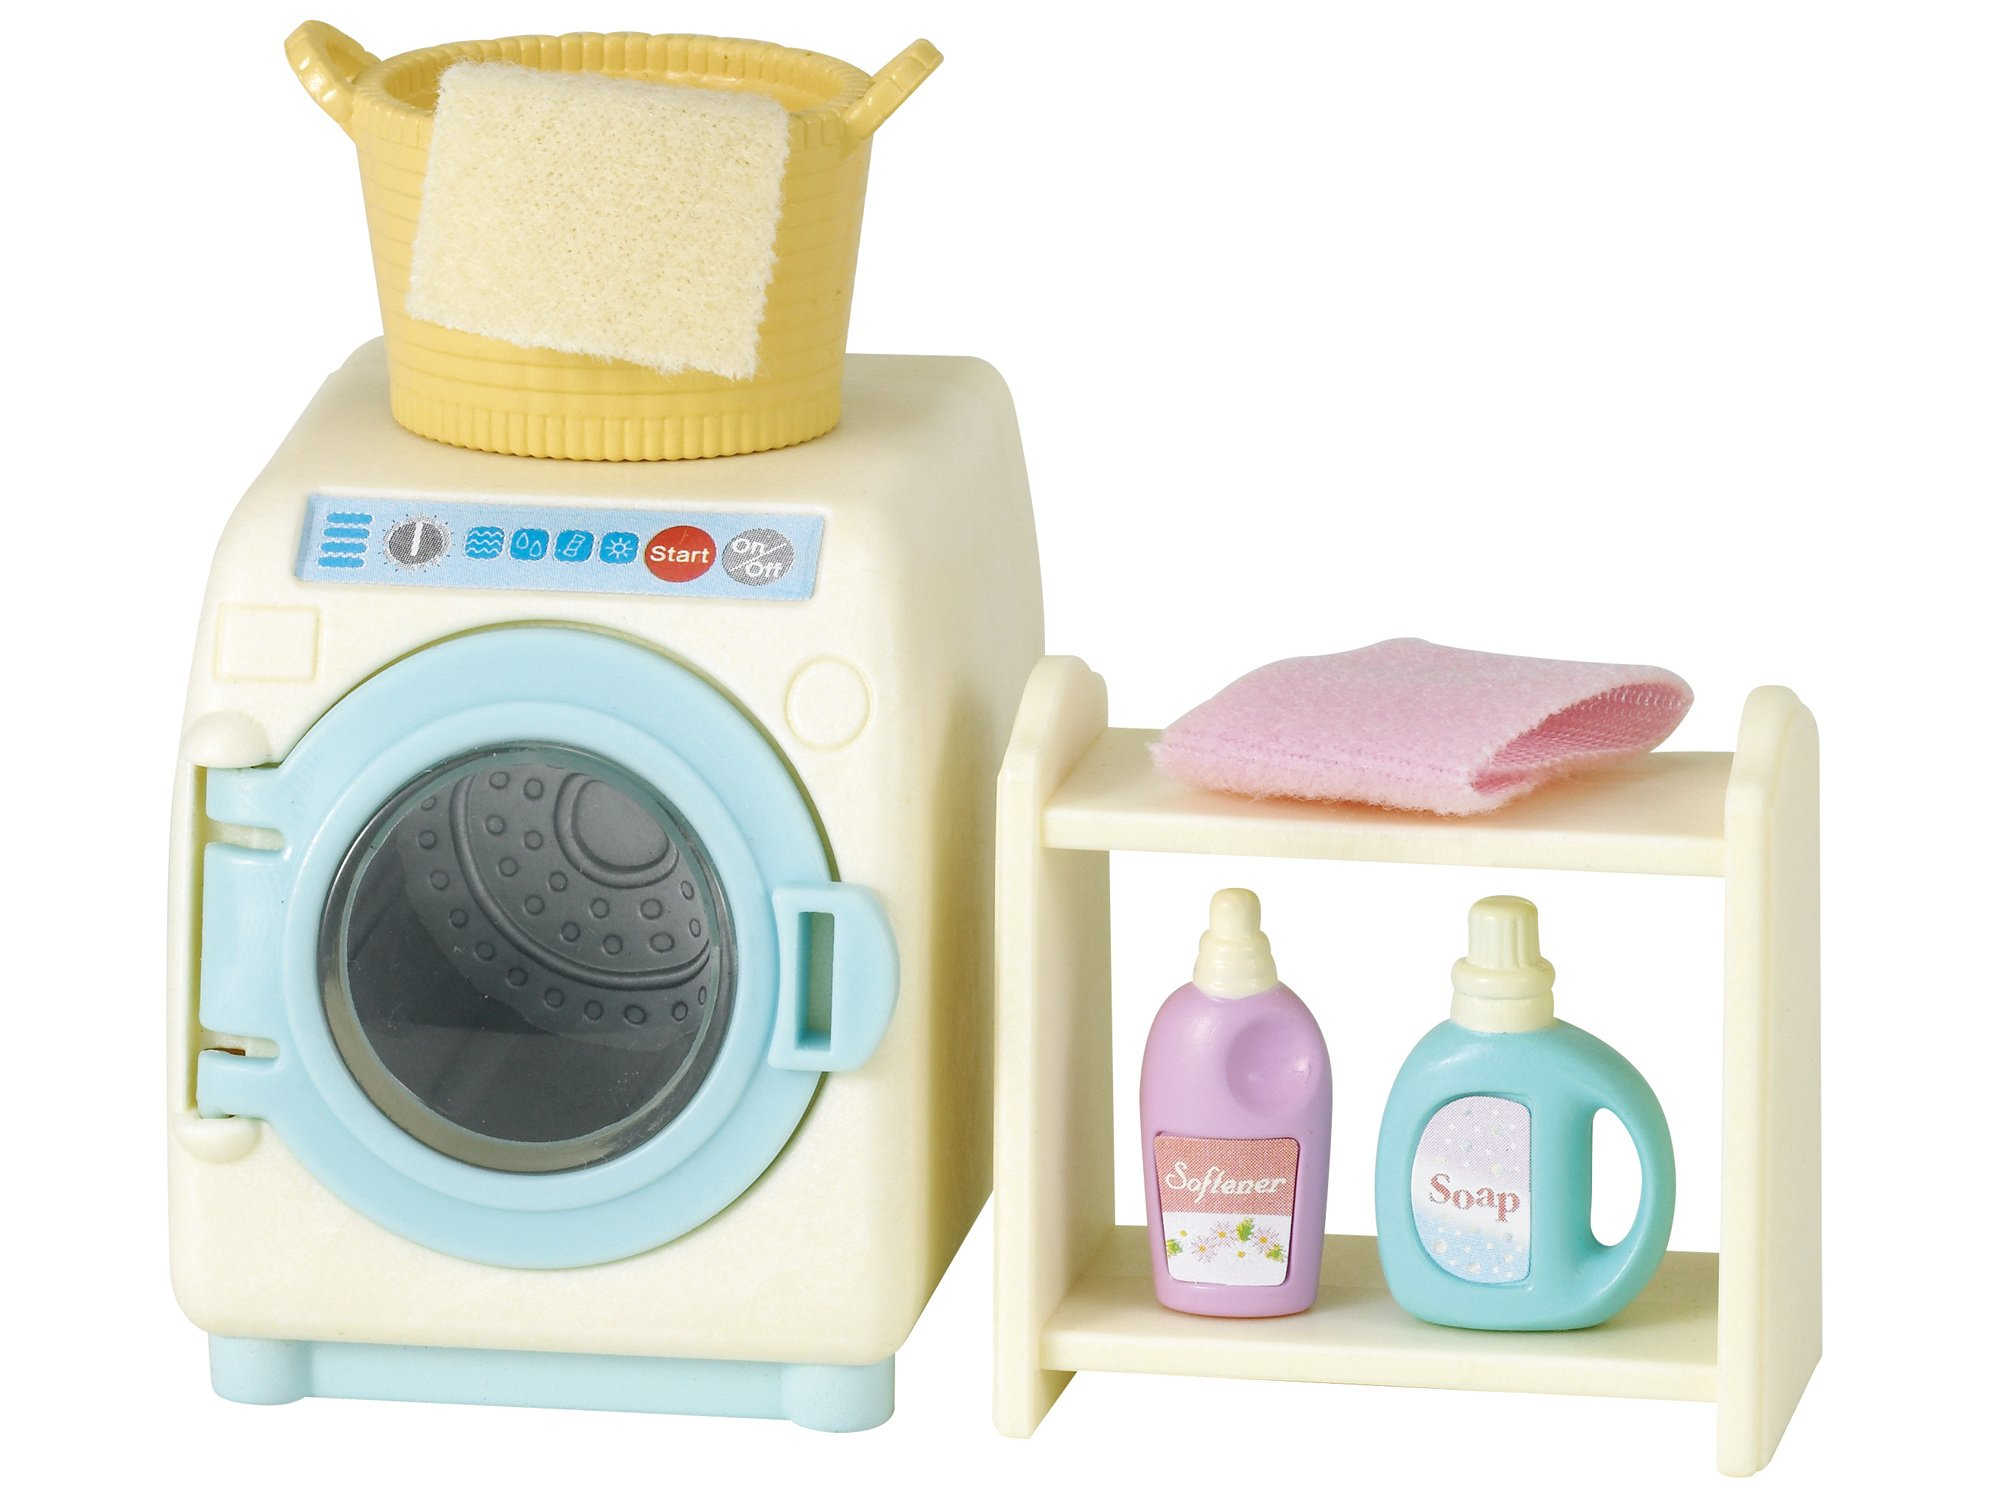 Sylvanian Families Washing Machine Set Mini muñecas y Accesorios, (Epoch 3565)